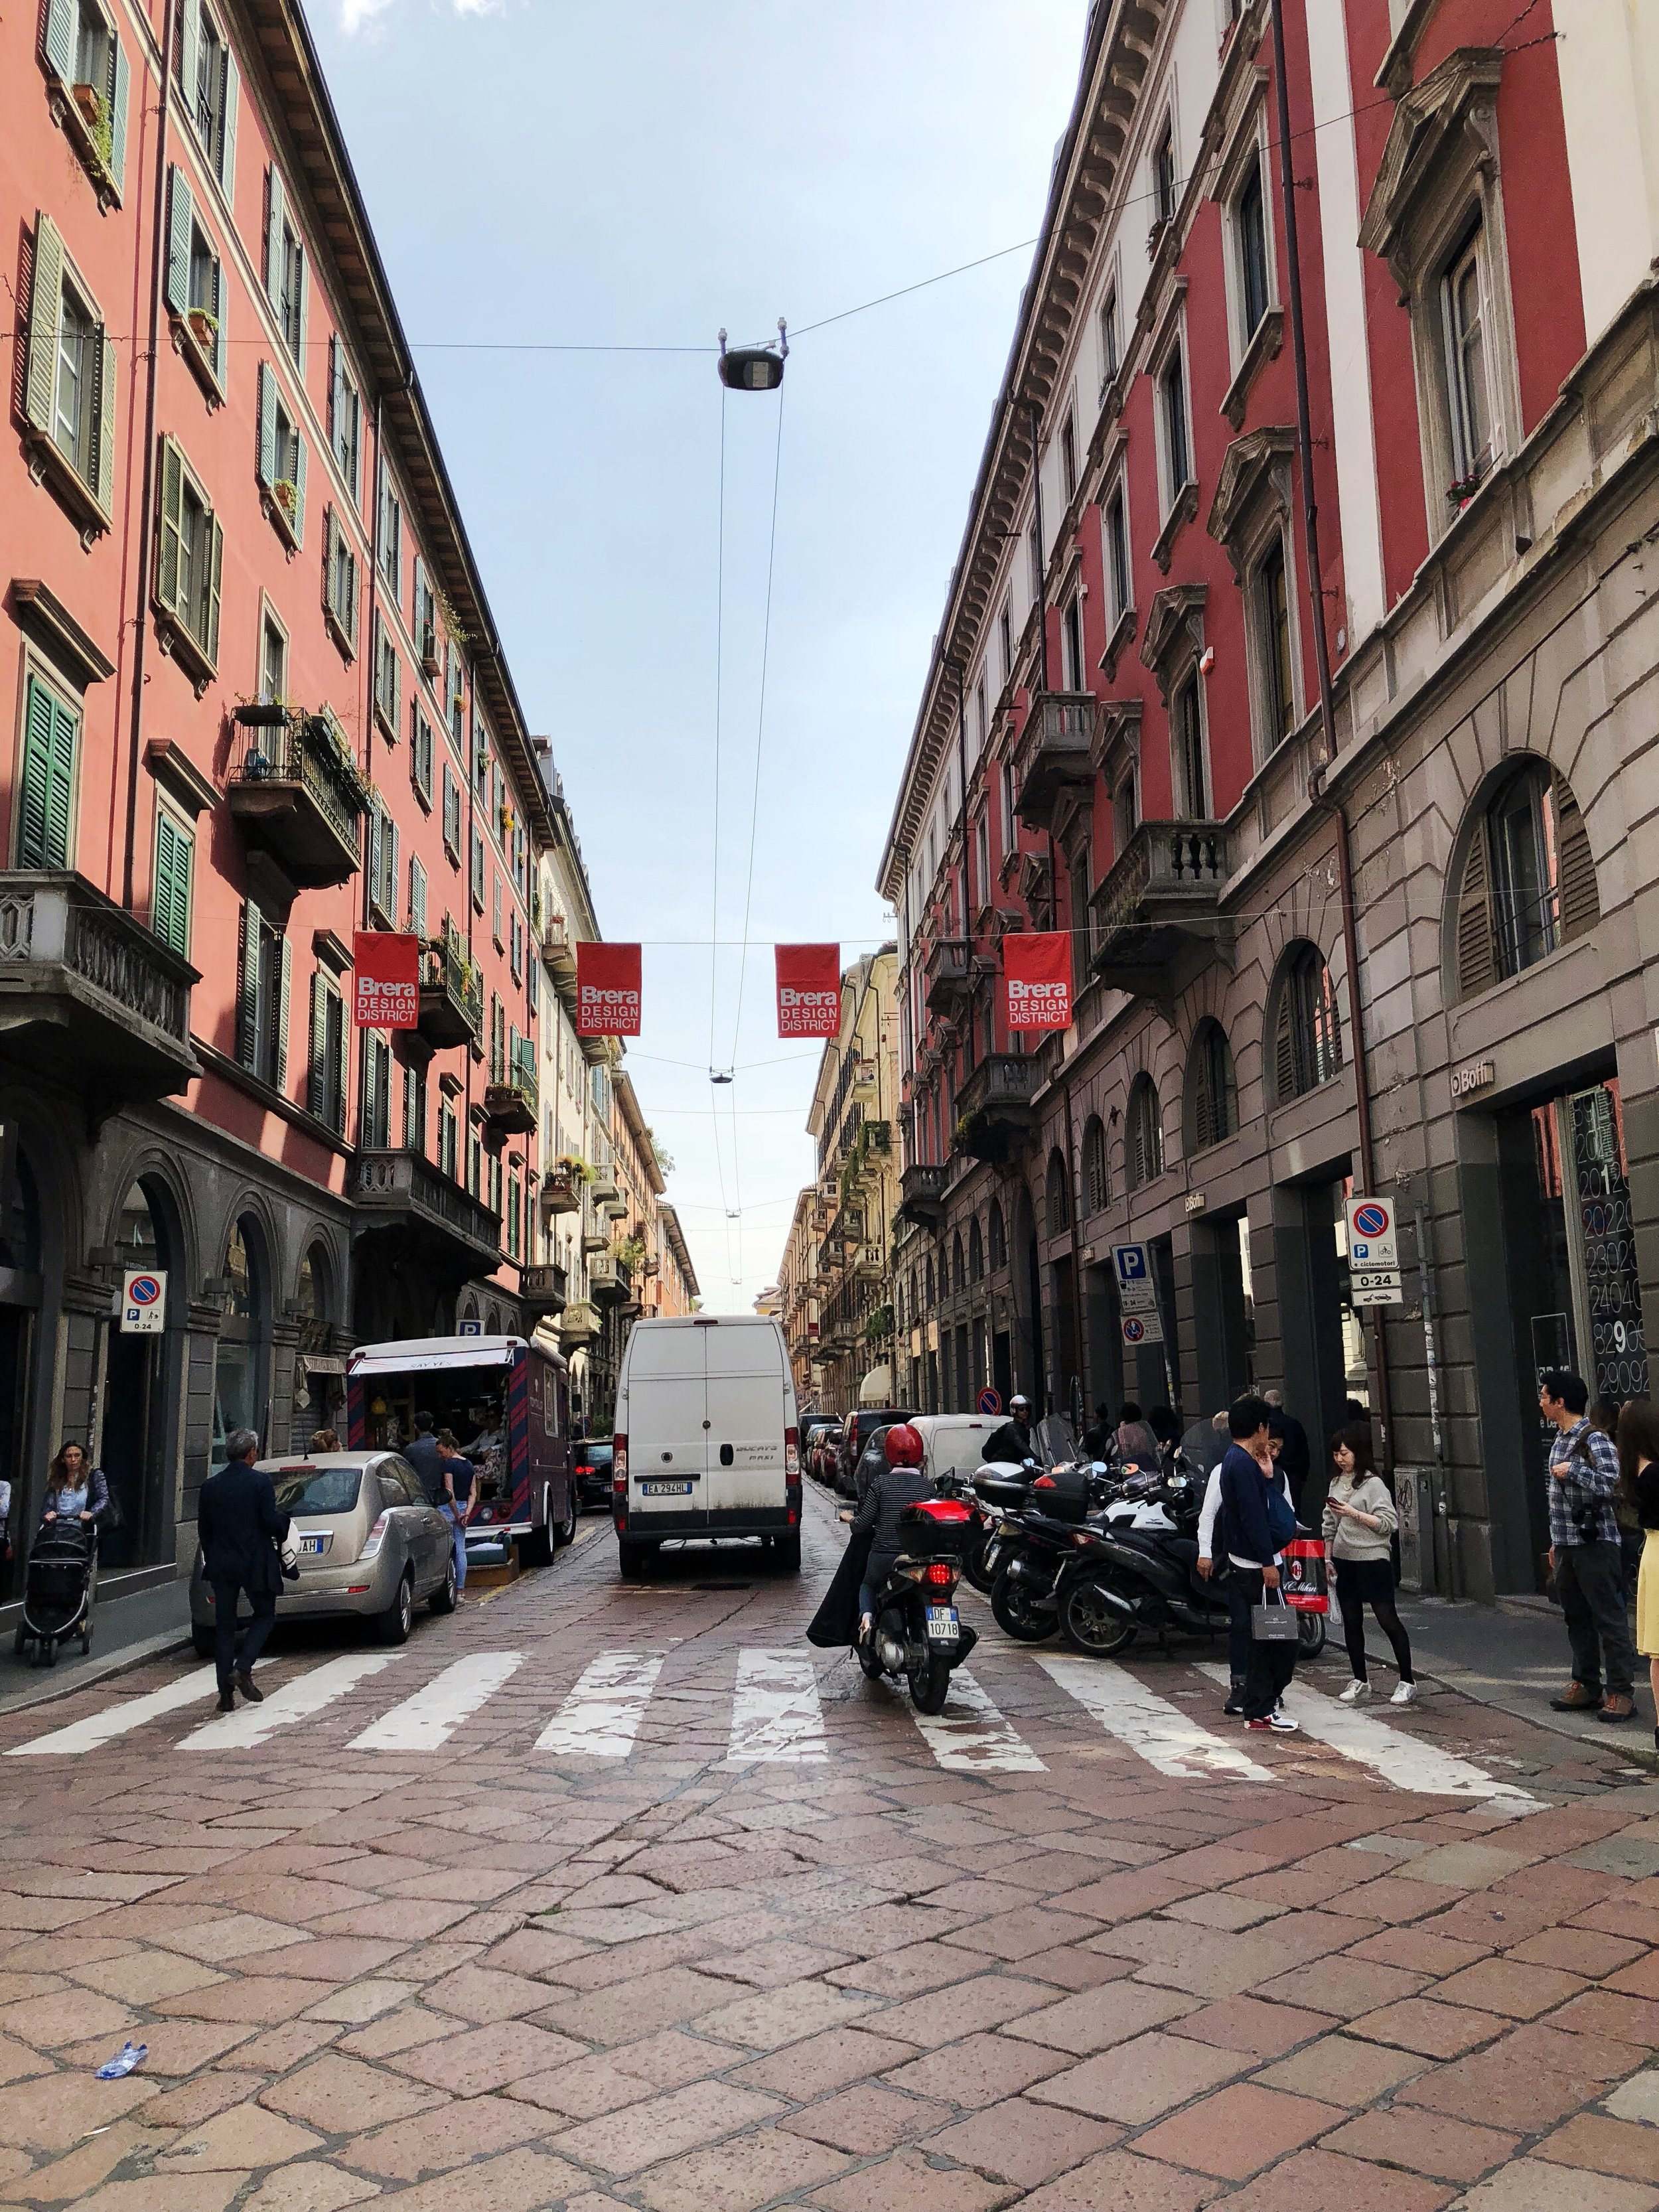 Busy Brera design district